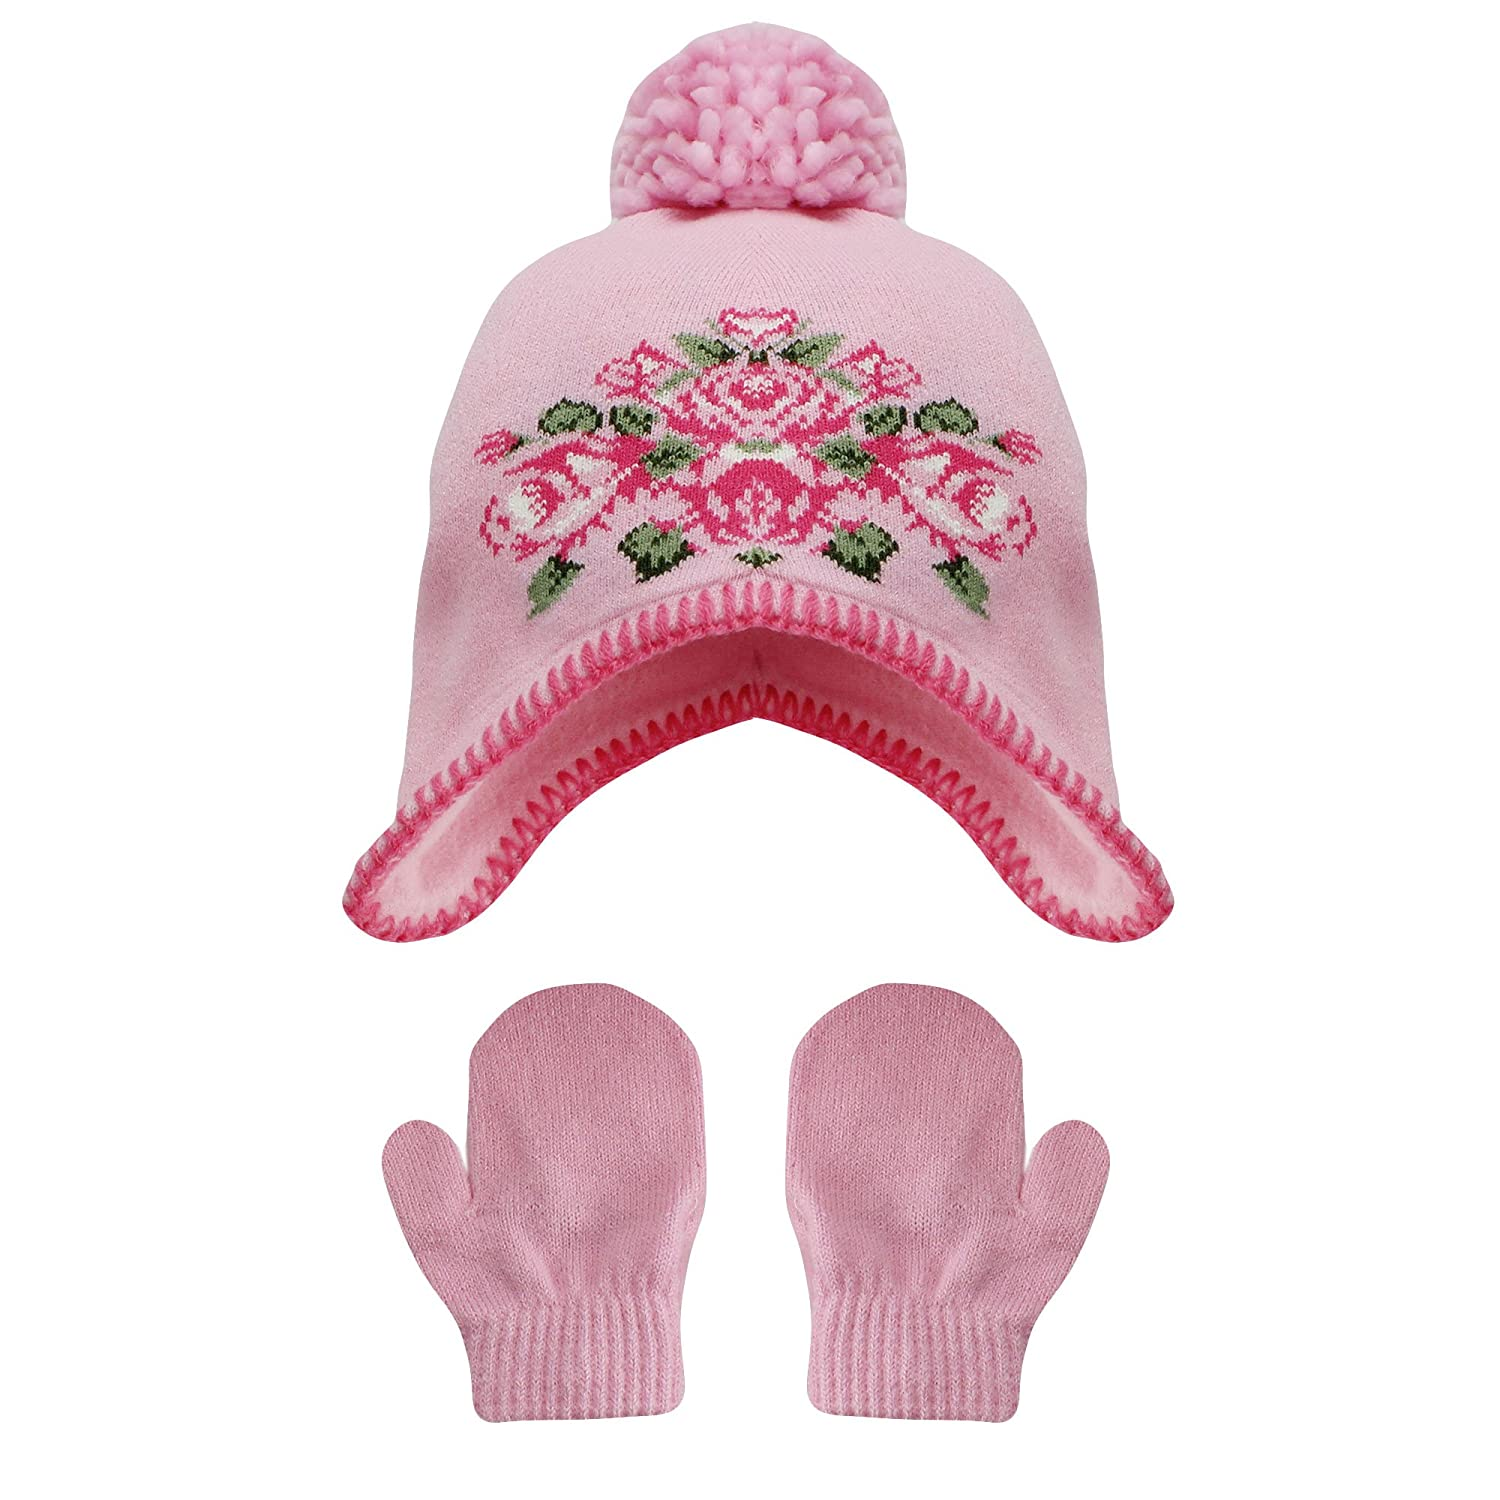 13e799ed66a Amazon.com  Little Me Girls Floral Pom Pom Winter Hat and Mitten Set Pink  Infant 12-24M  Baby